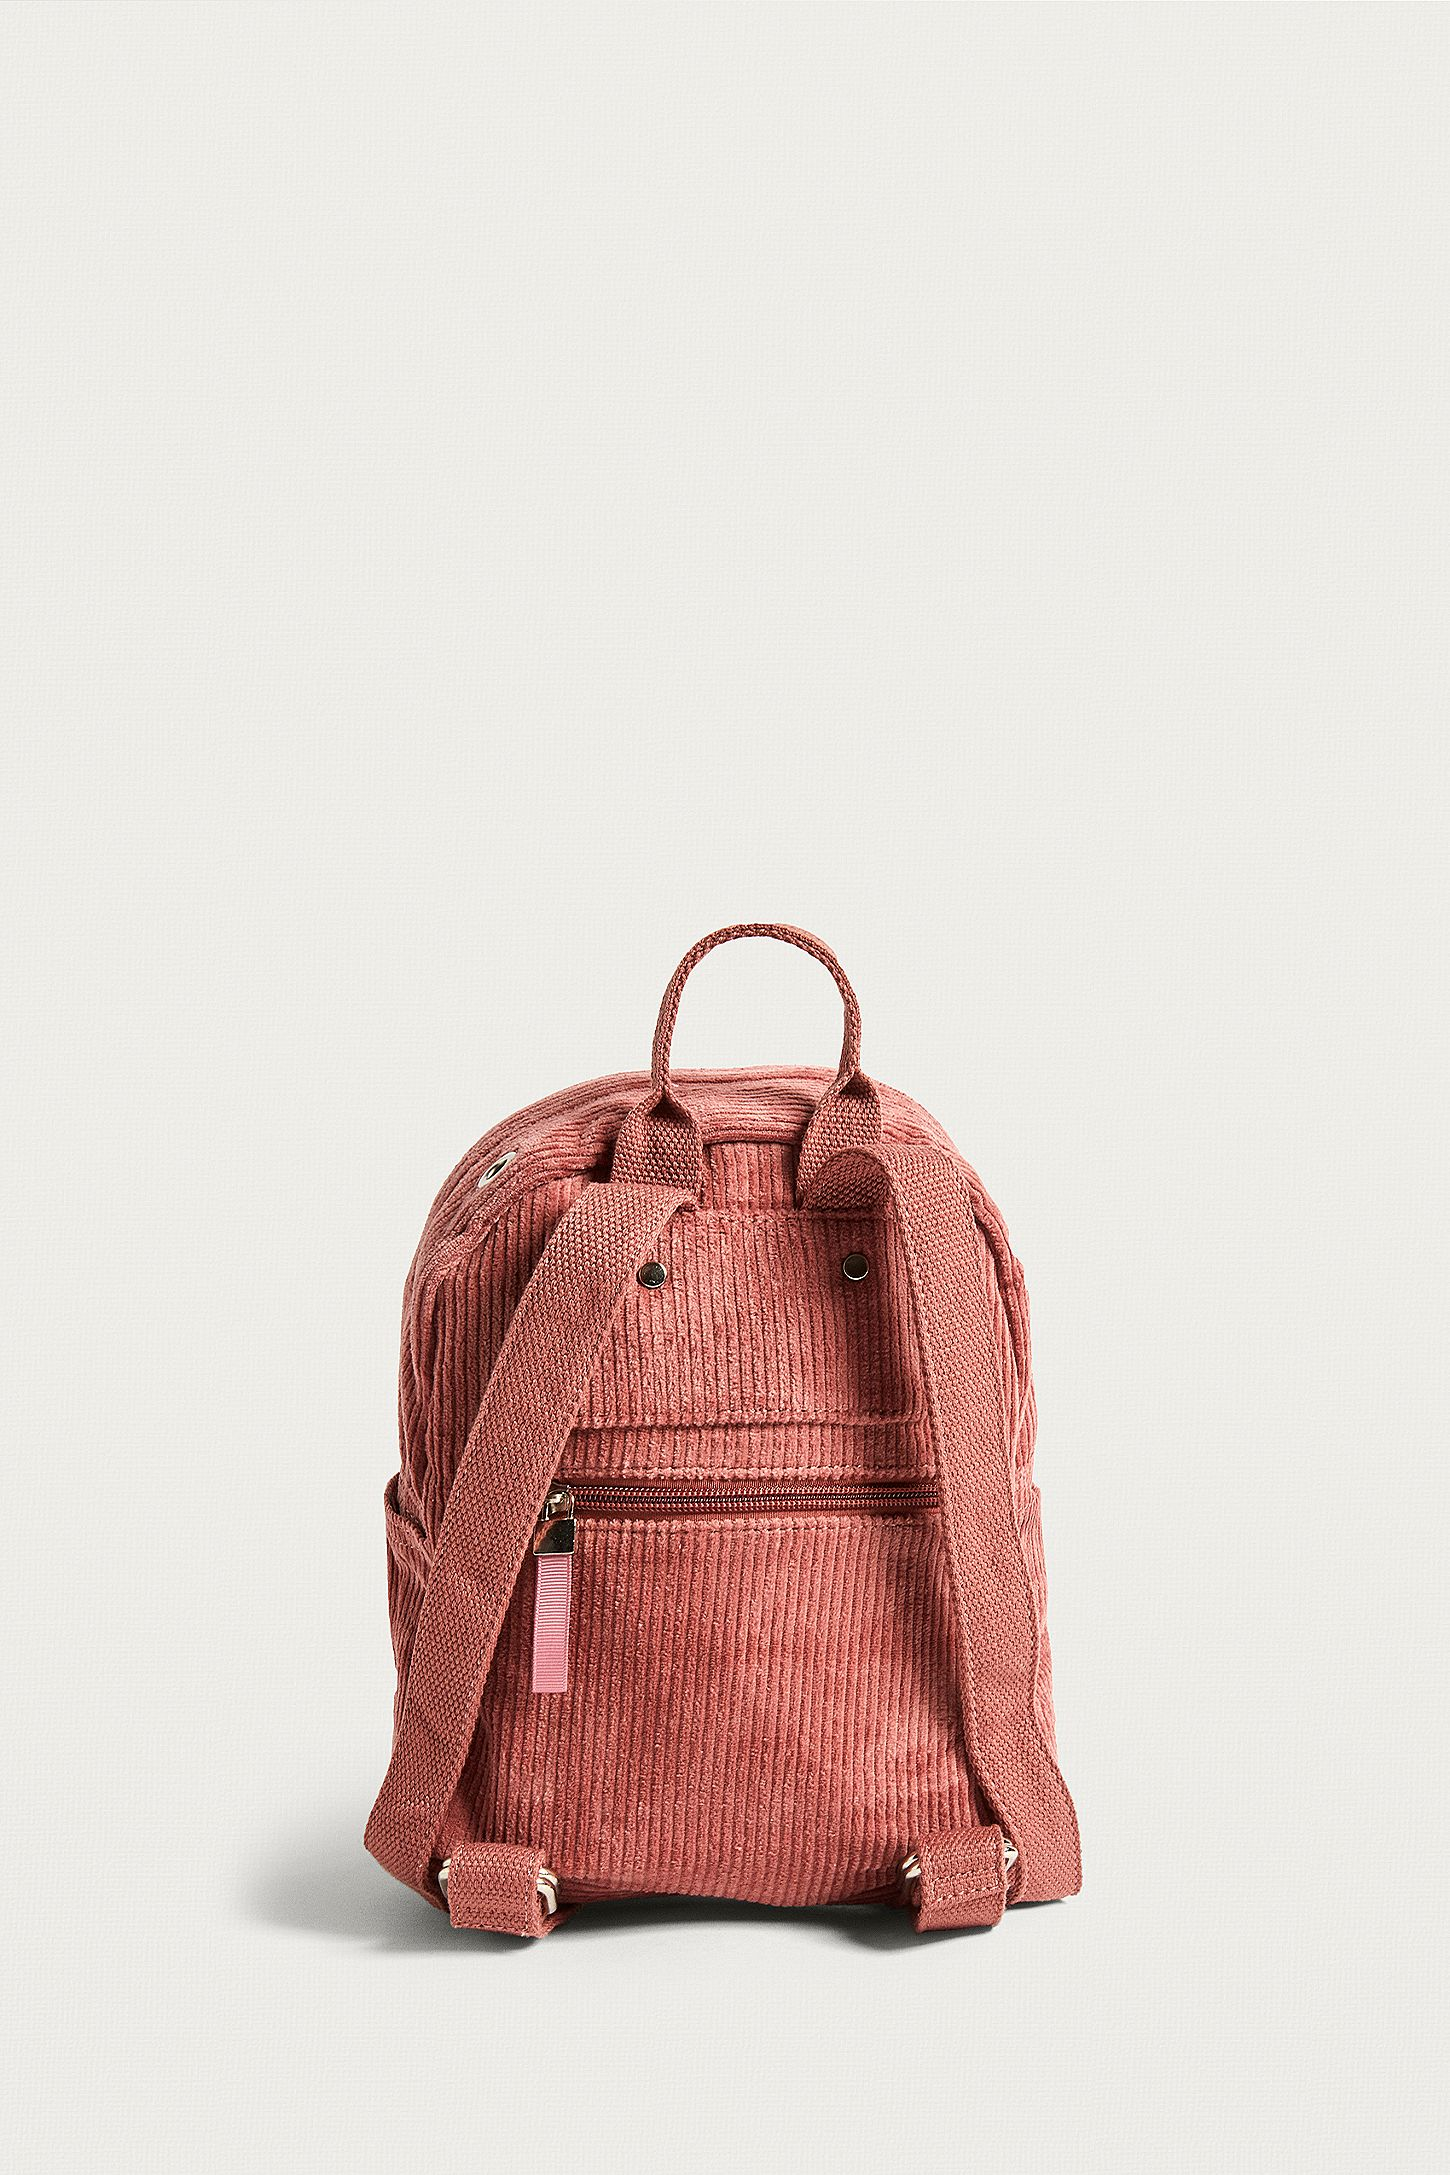 1f389342a0 Urban Outfitters Bdg Canvas Backpack- Fenix Toulouse Handball